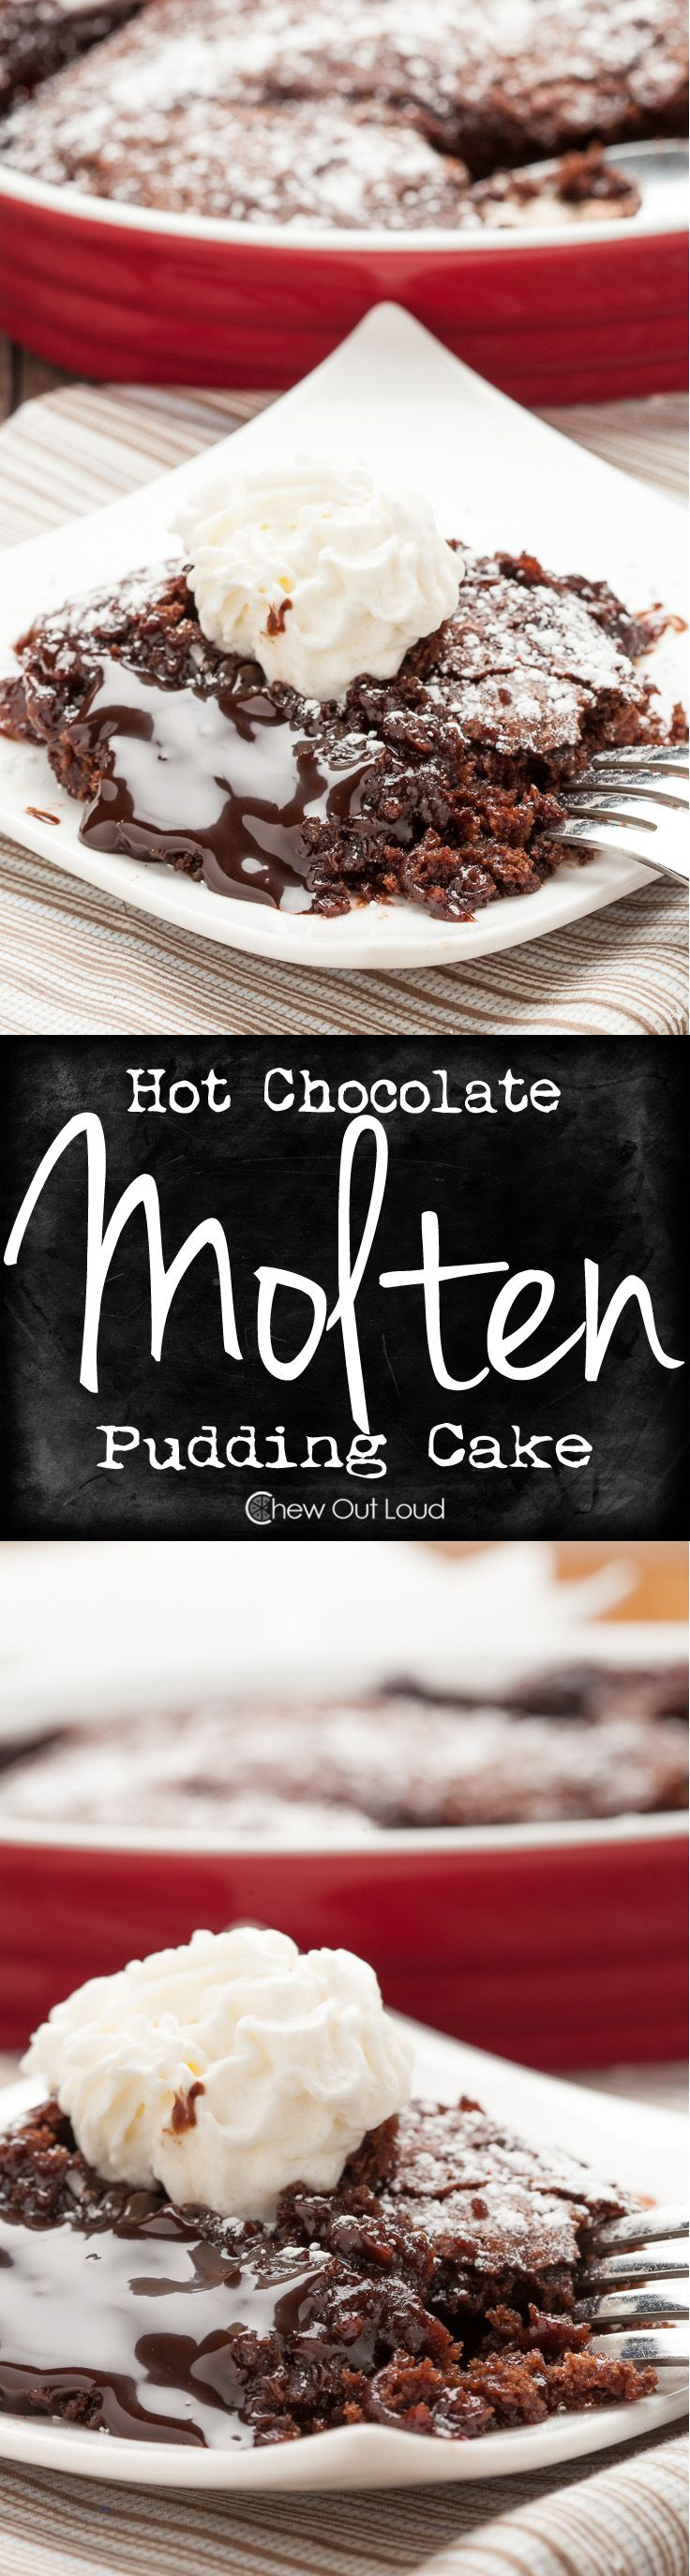 For all the Chocoholics in the world. This Molten Chocolate Pudding Cake is a dream come true. Easy and nothing artificial. #dessert #recipe